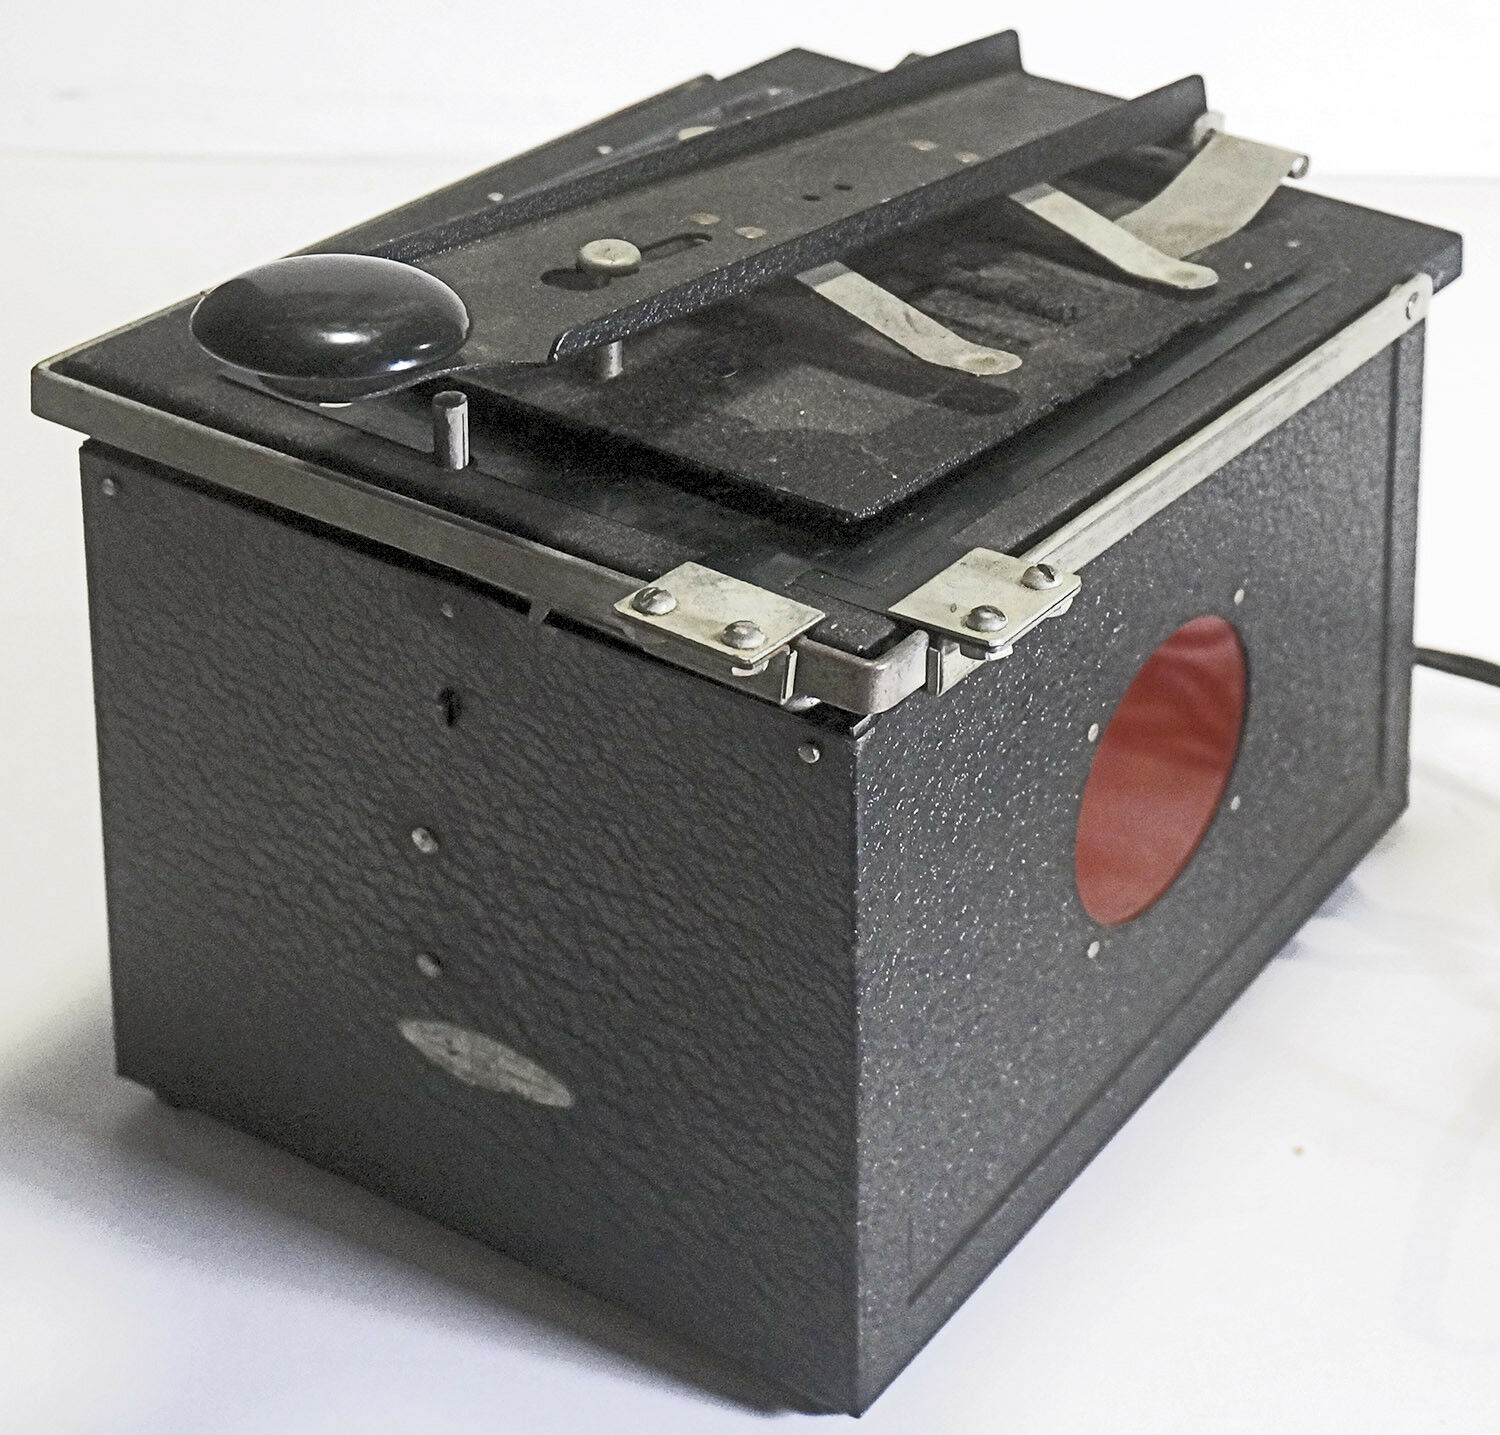 Vintage Photography Darkroom Equipment - Exposure Press 4 x5 9x12cm  - $60.00